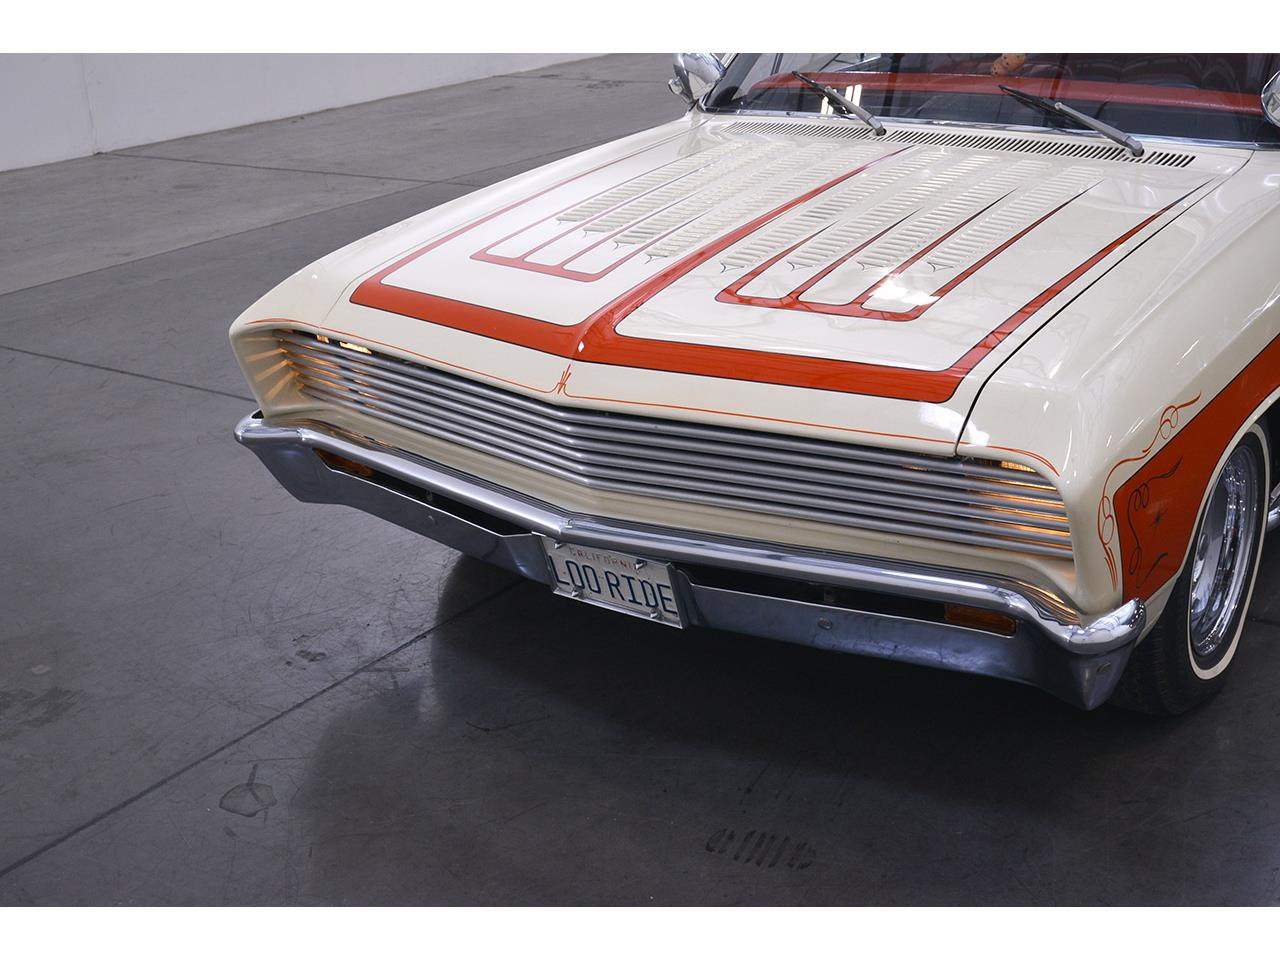 Large Picture of Classic 1967 Chevrolet El Camino located in Scottsdale Arizona - $27,000.00 - PFC7